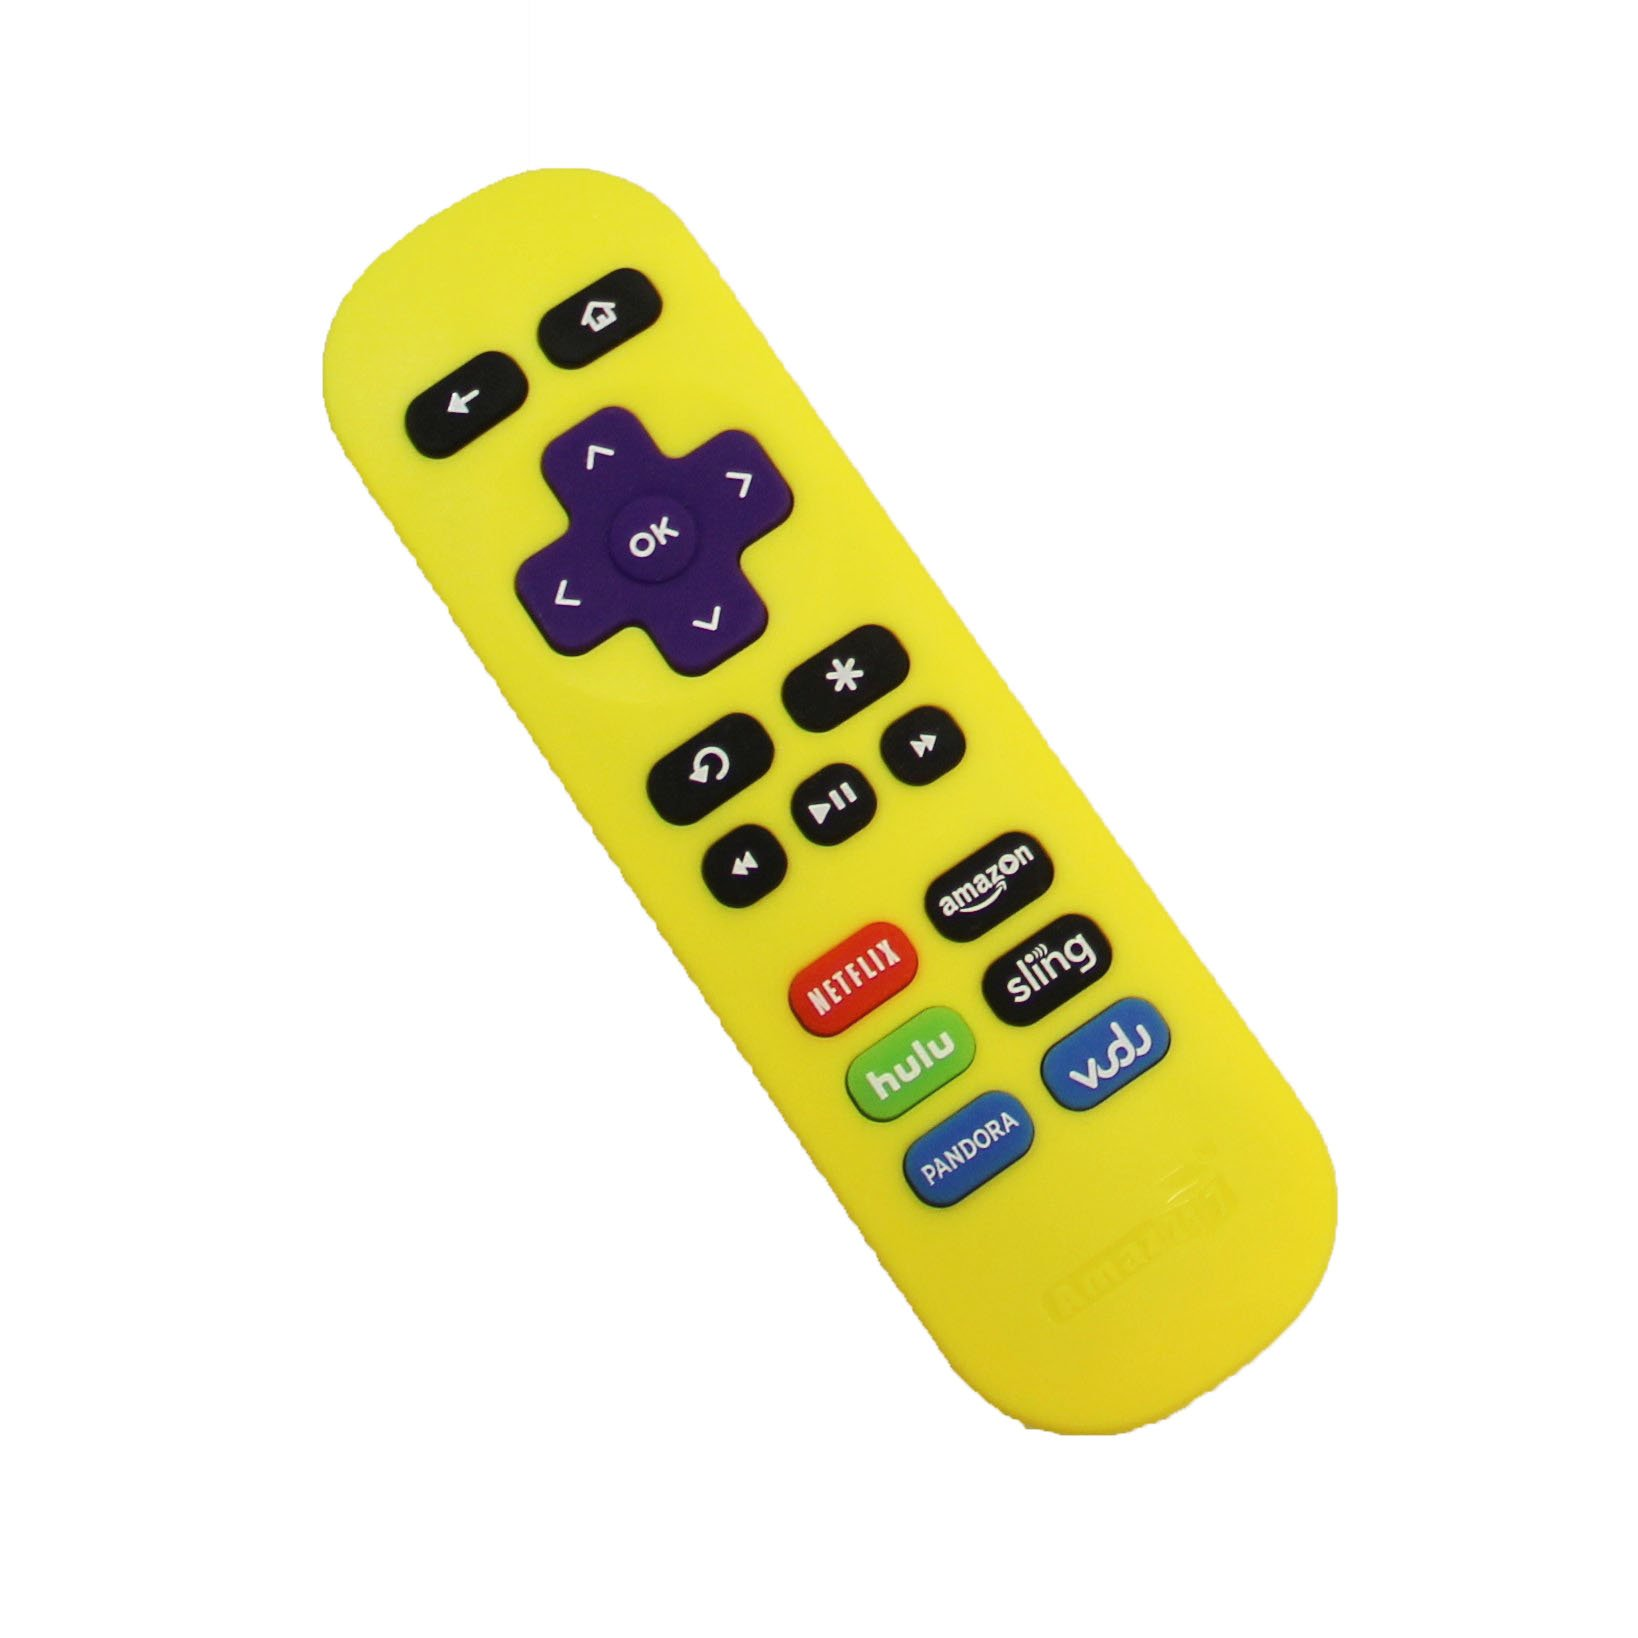 Amaz247 ARCBZ01 Replacement Remote for Roku Streaming player (Roku 1/2/3/4, HD/LT/XS/XD), MLK247 Streaming Player; DO NOT Support Roku Stick, Roku TV or MLK247 TV